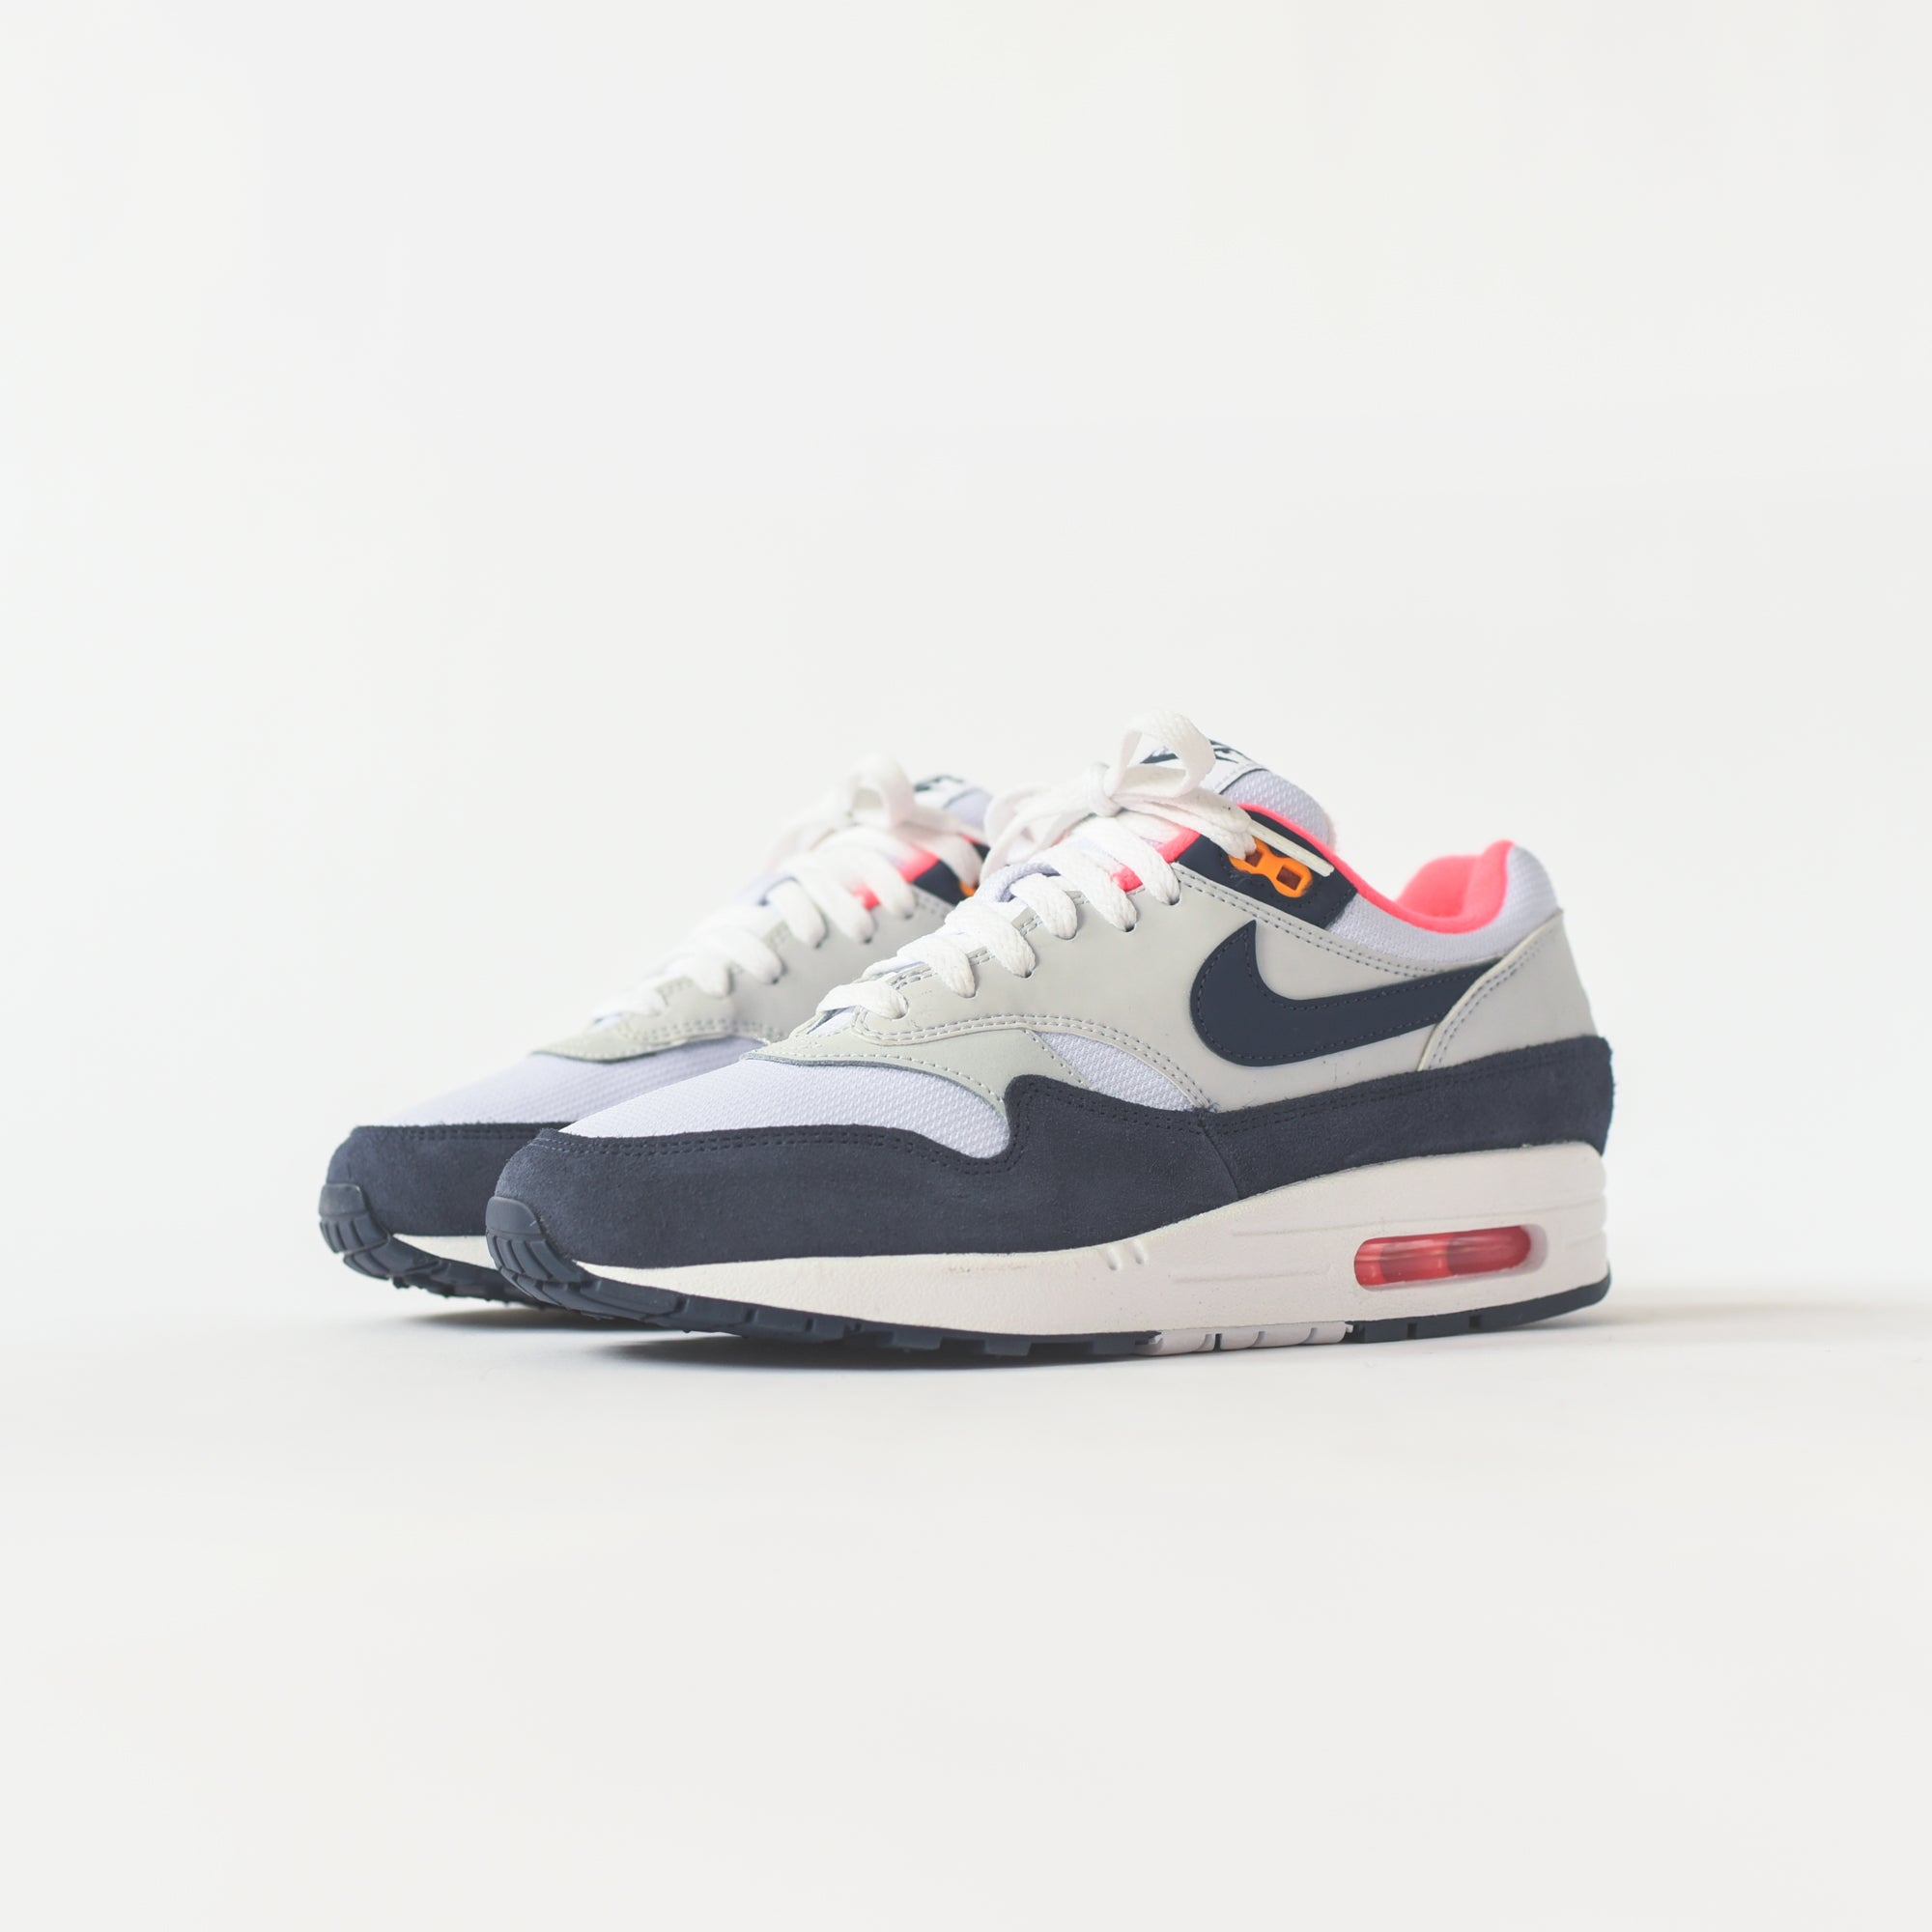 various styles new authentic factory authentic Nike WMNS Air Max 1 - White / Midnight Navy / Pure Platinum ...